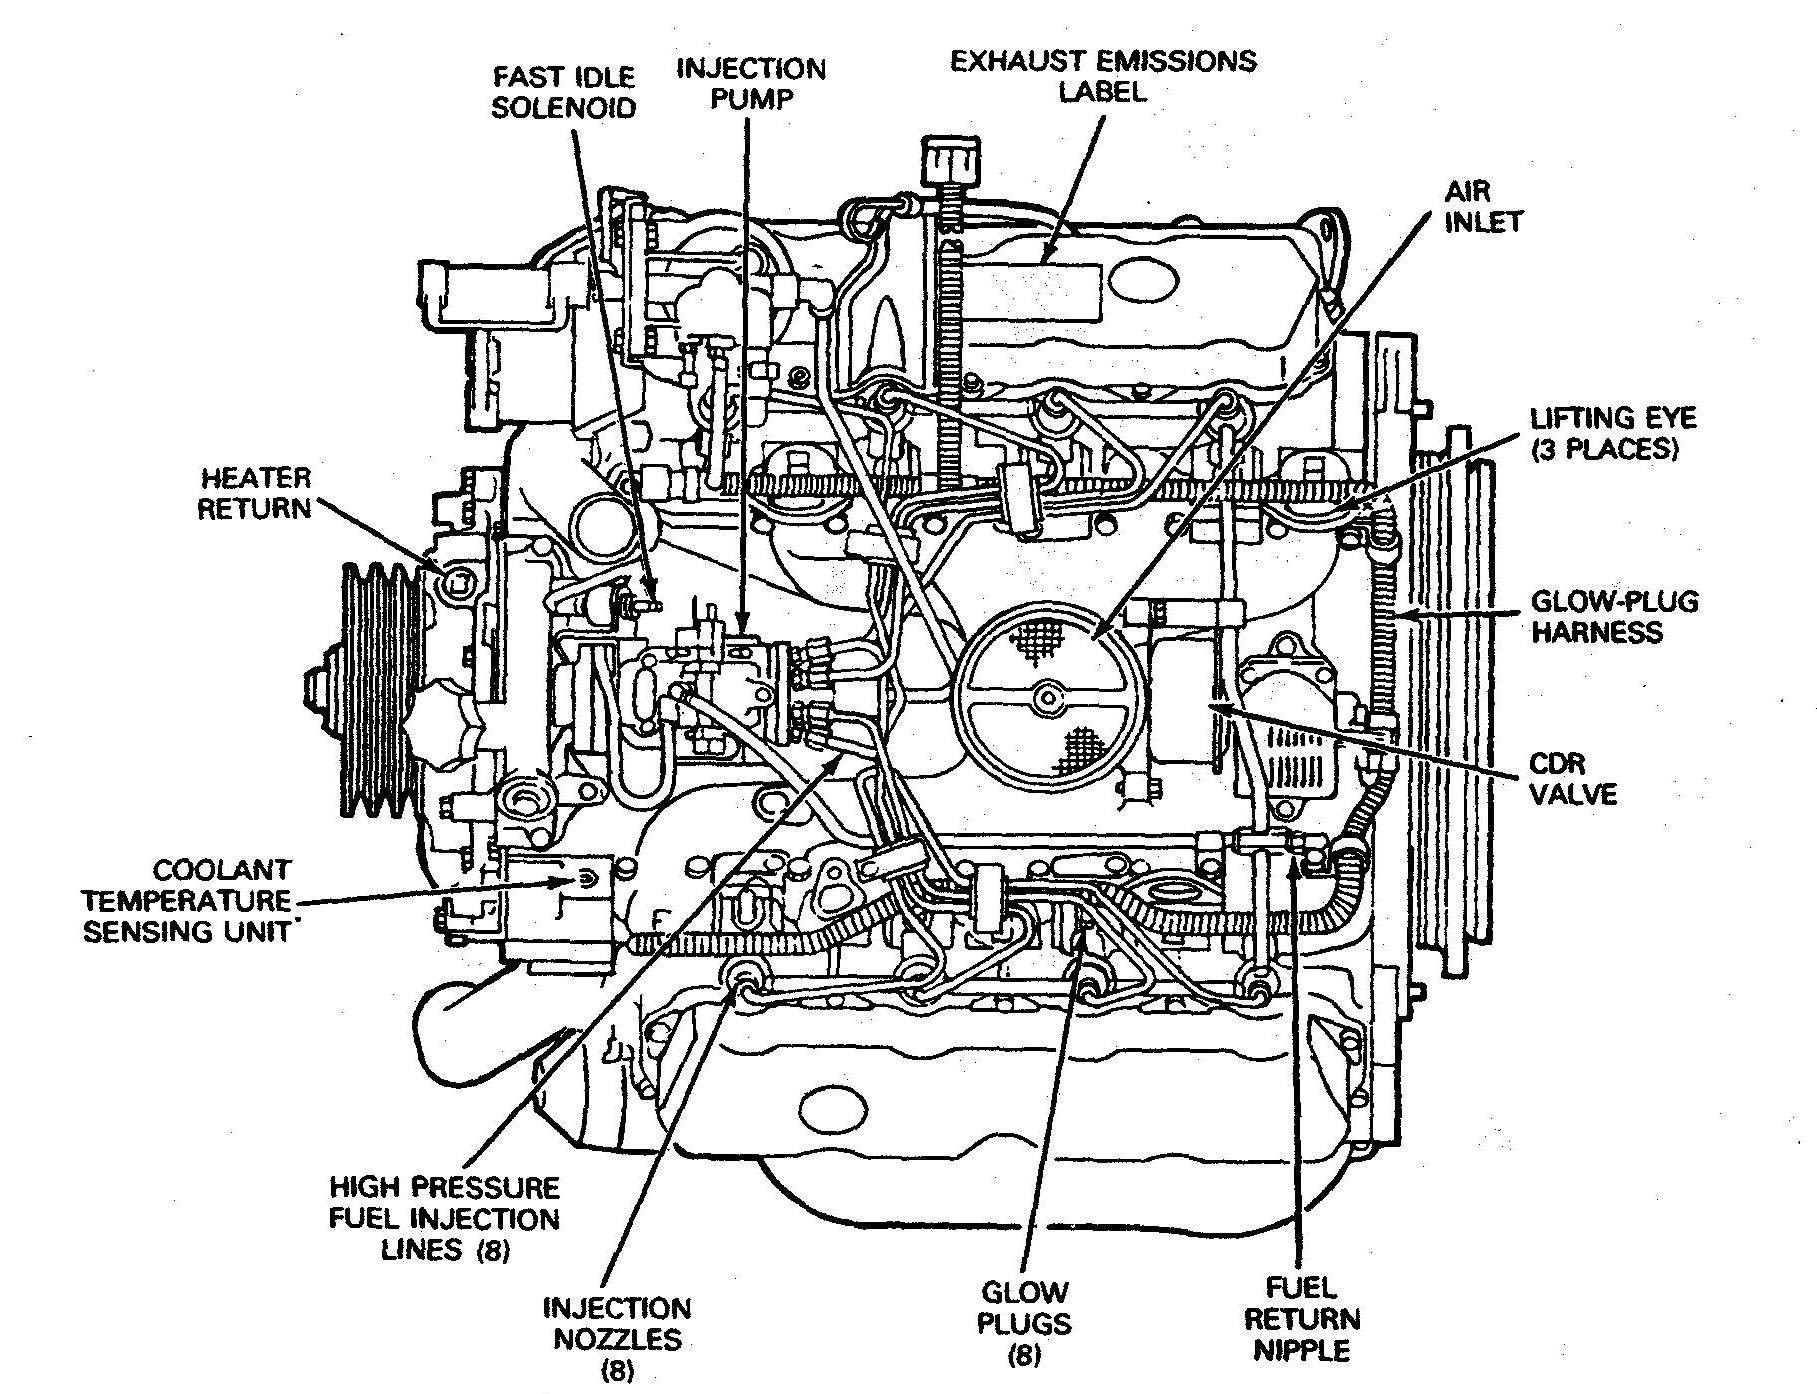 [SCHEMATICS_4PO]  6E3B0F Vintagebus Vw Bus And Other Wiring Diagrams | Wiring Library | Vw Bus Engine Diagram |  | Wiring Library